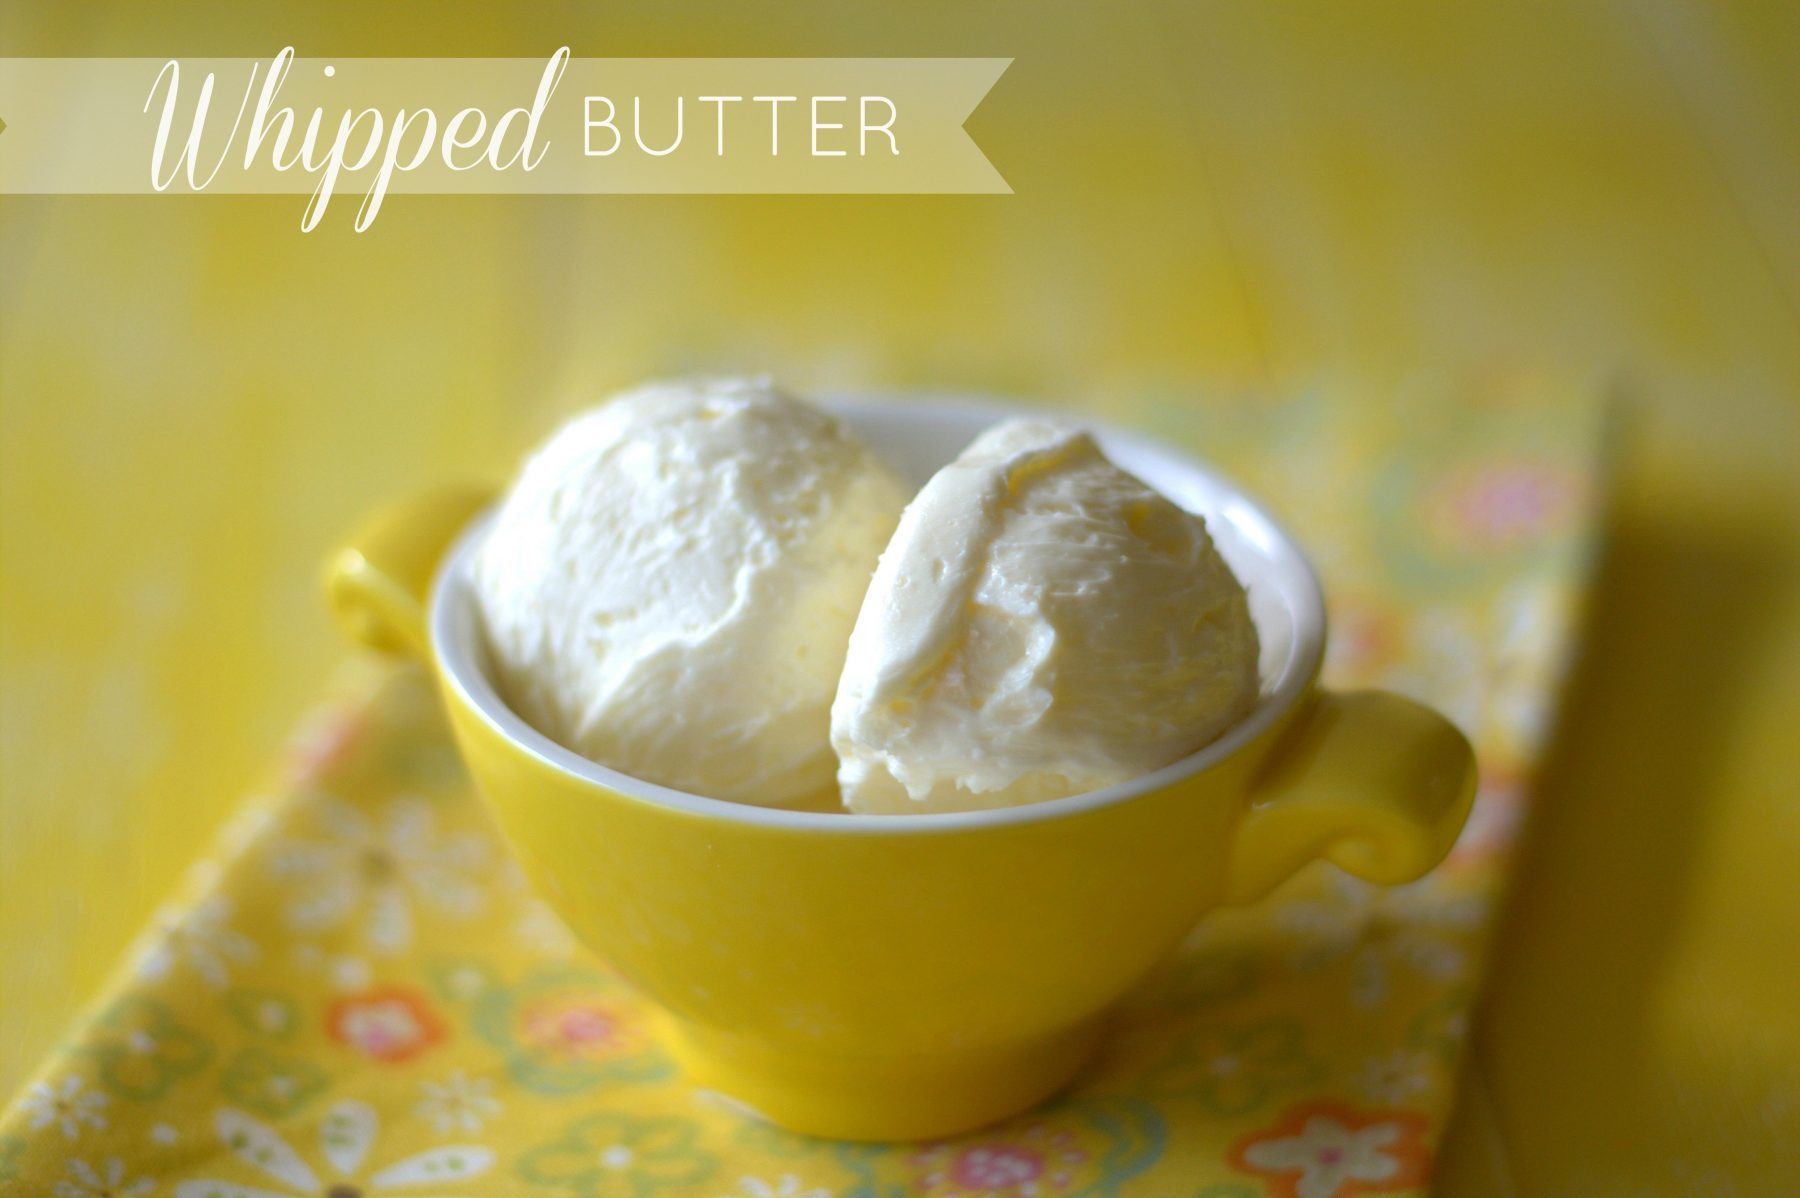 Easy homemade whipped butter recipe made with just two ingredients: butter and whole milk! Now you can make this restaurant staple at home! via @foodfolksandfun